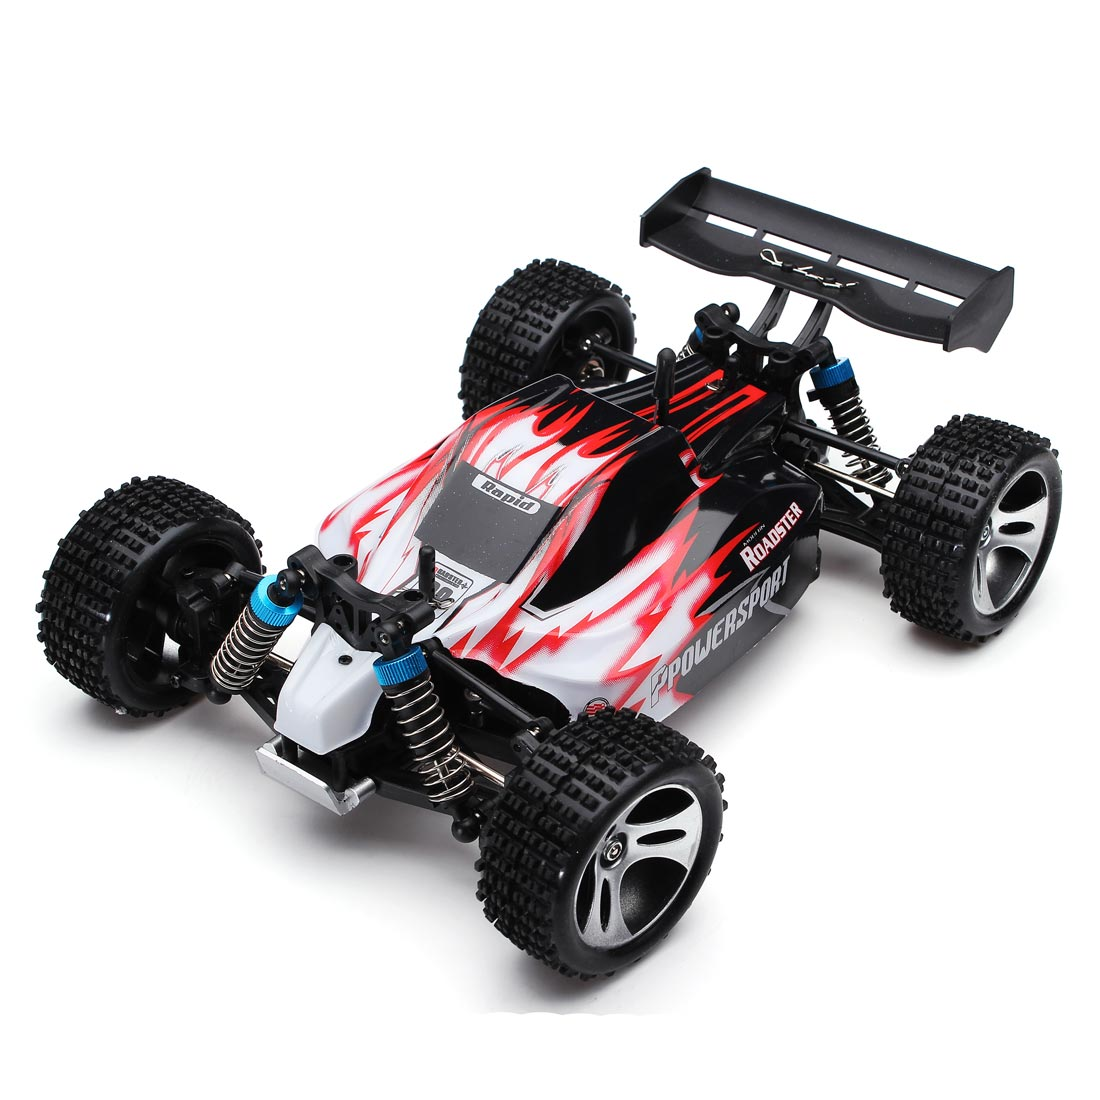 RC Car WLtoys A959 2.4G 1/18 Scale Remote Control Off-road Racing Car High Speed Stunt SUV Toy Gift For Boy RC Mini Car RTR wltoys k969 1 28 2 4g 4wd electric rc car 30kmh rtr version high speed drift car